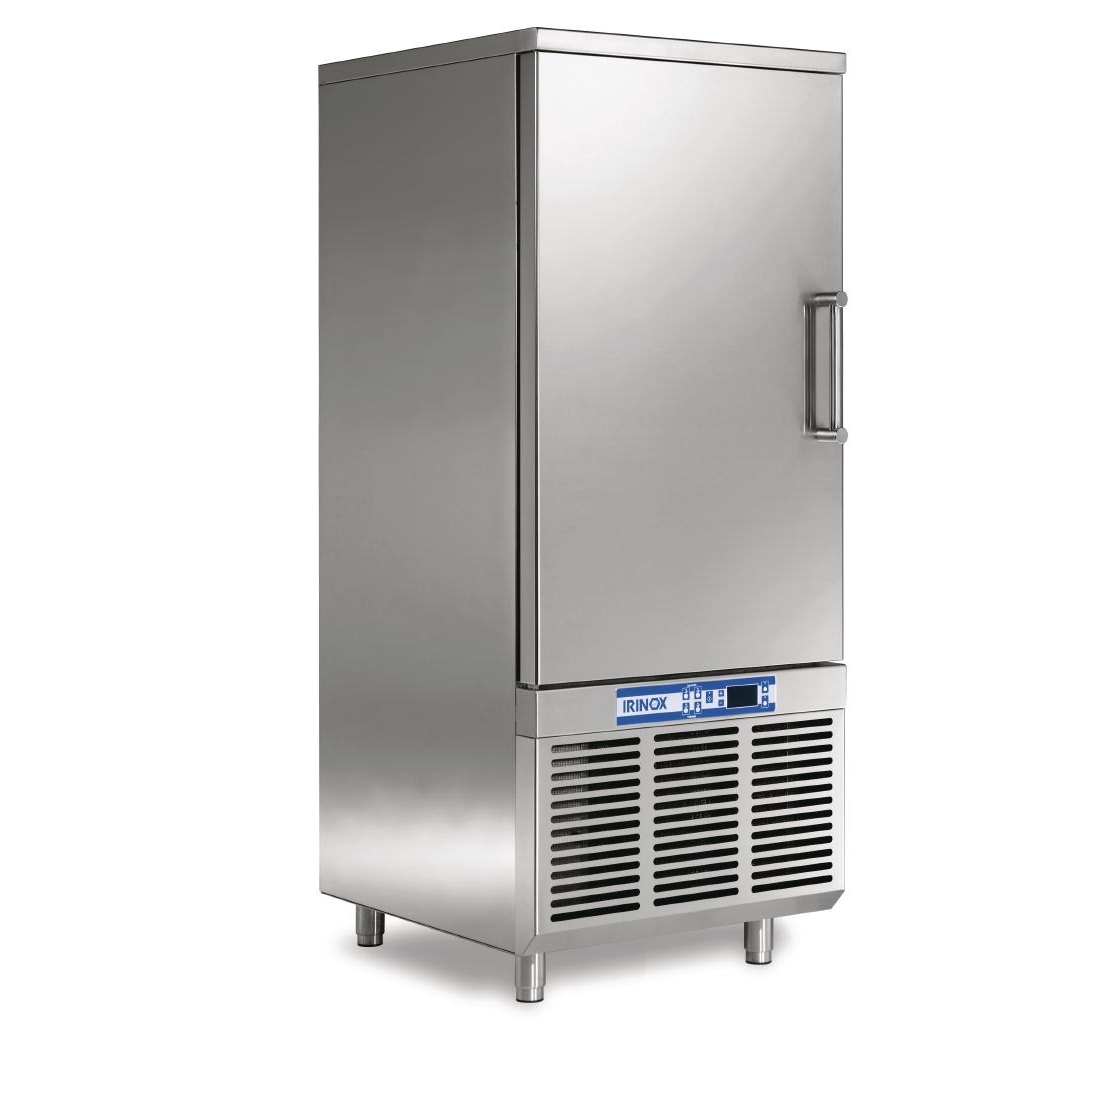 Irinox EasyFresh 45kg Blast Chiller Freezer EF 45.1